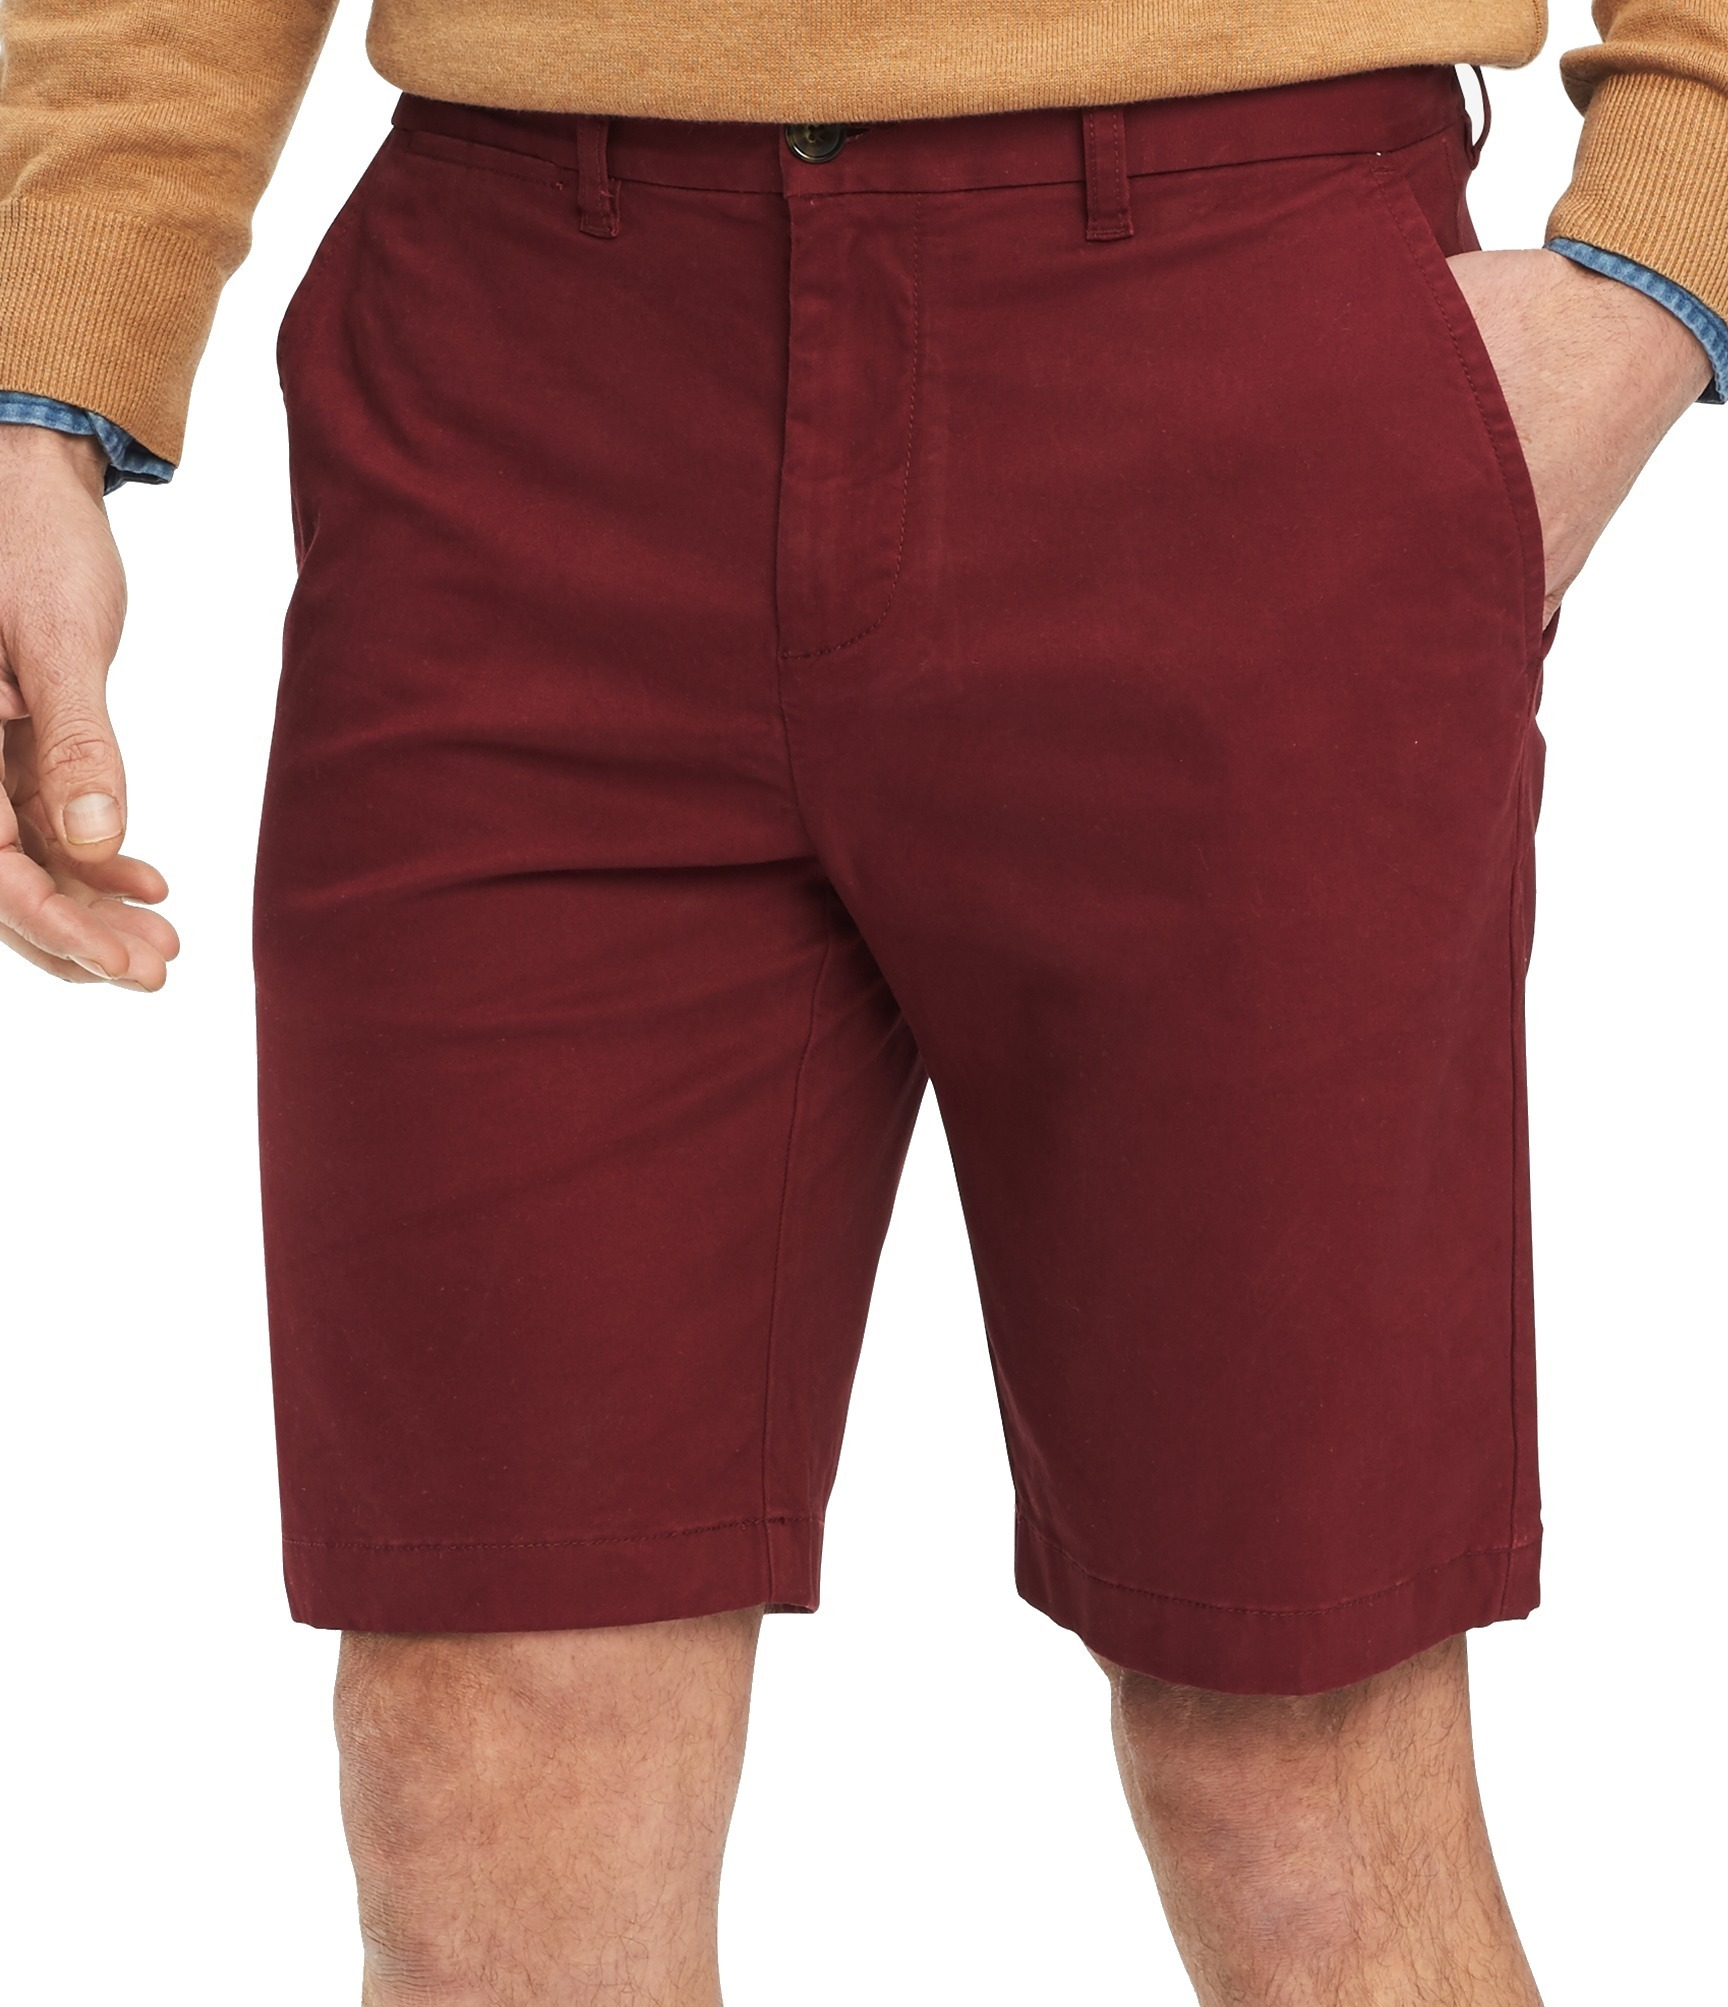 New-Tommy-Hilfiger-Mens-Shorts-Solid-Red-Size-30-The-Flex-Khakis-Chinos-49-145